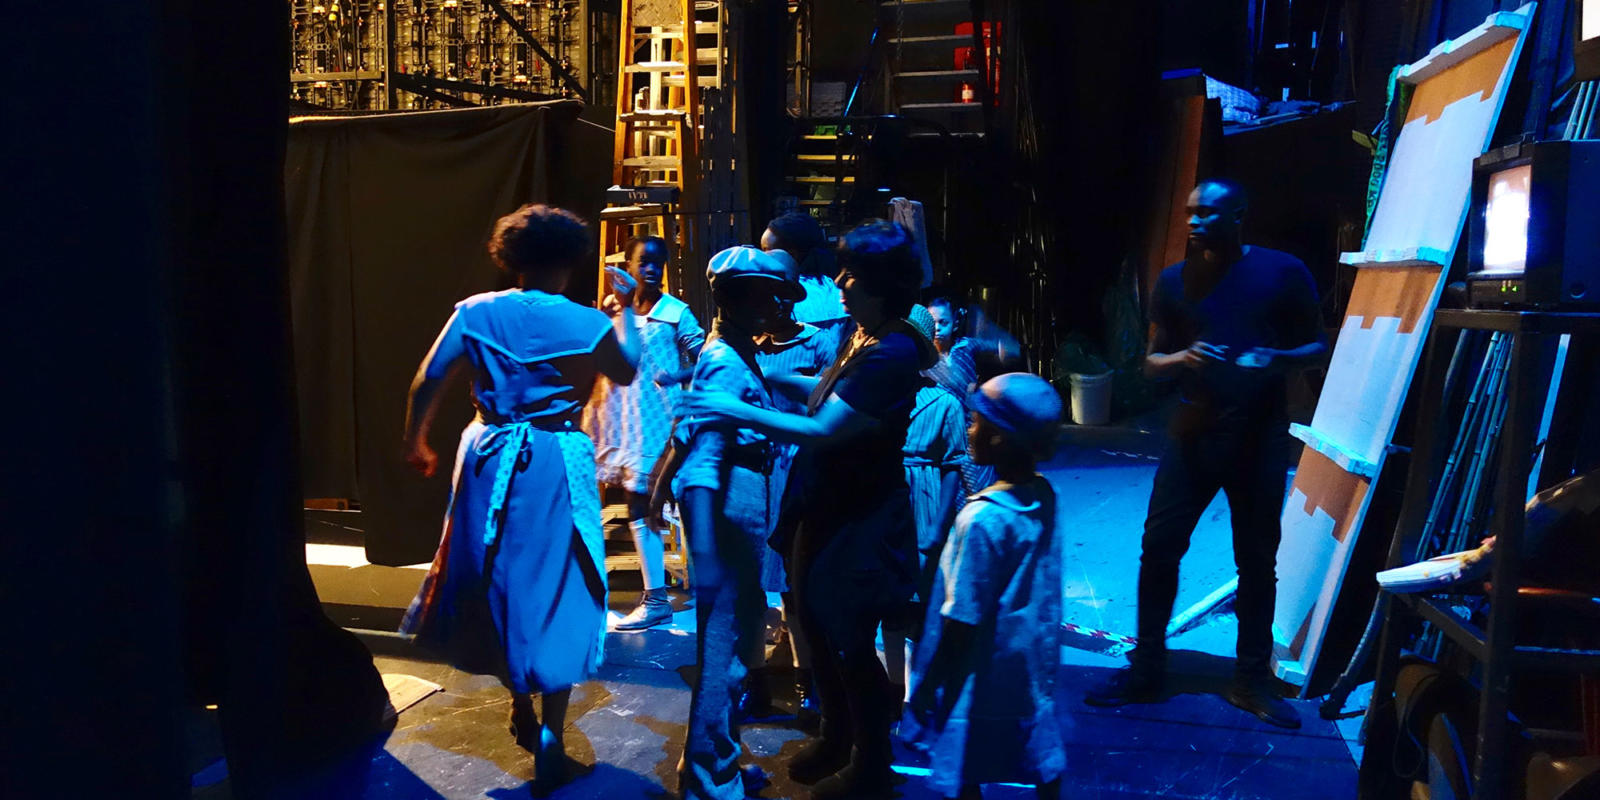 Members of the Children's Chorus play with one another in the wings